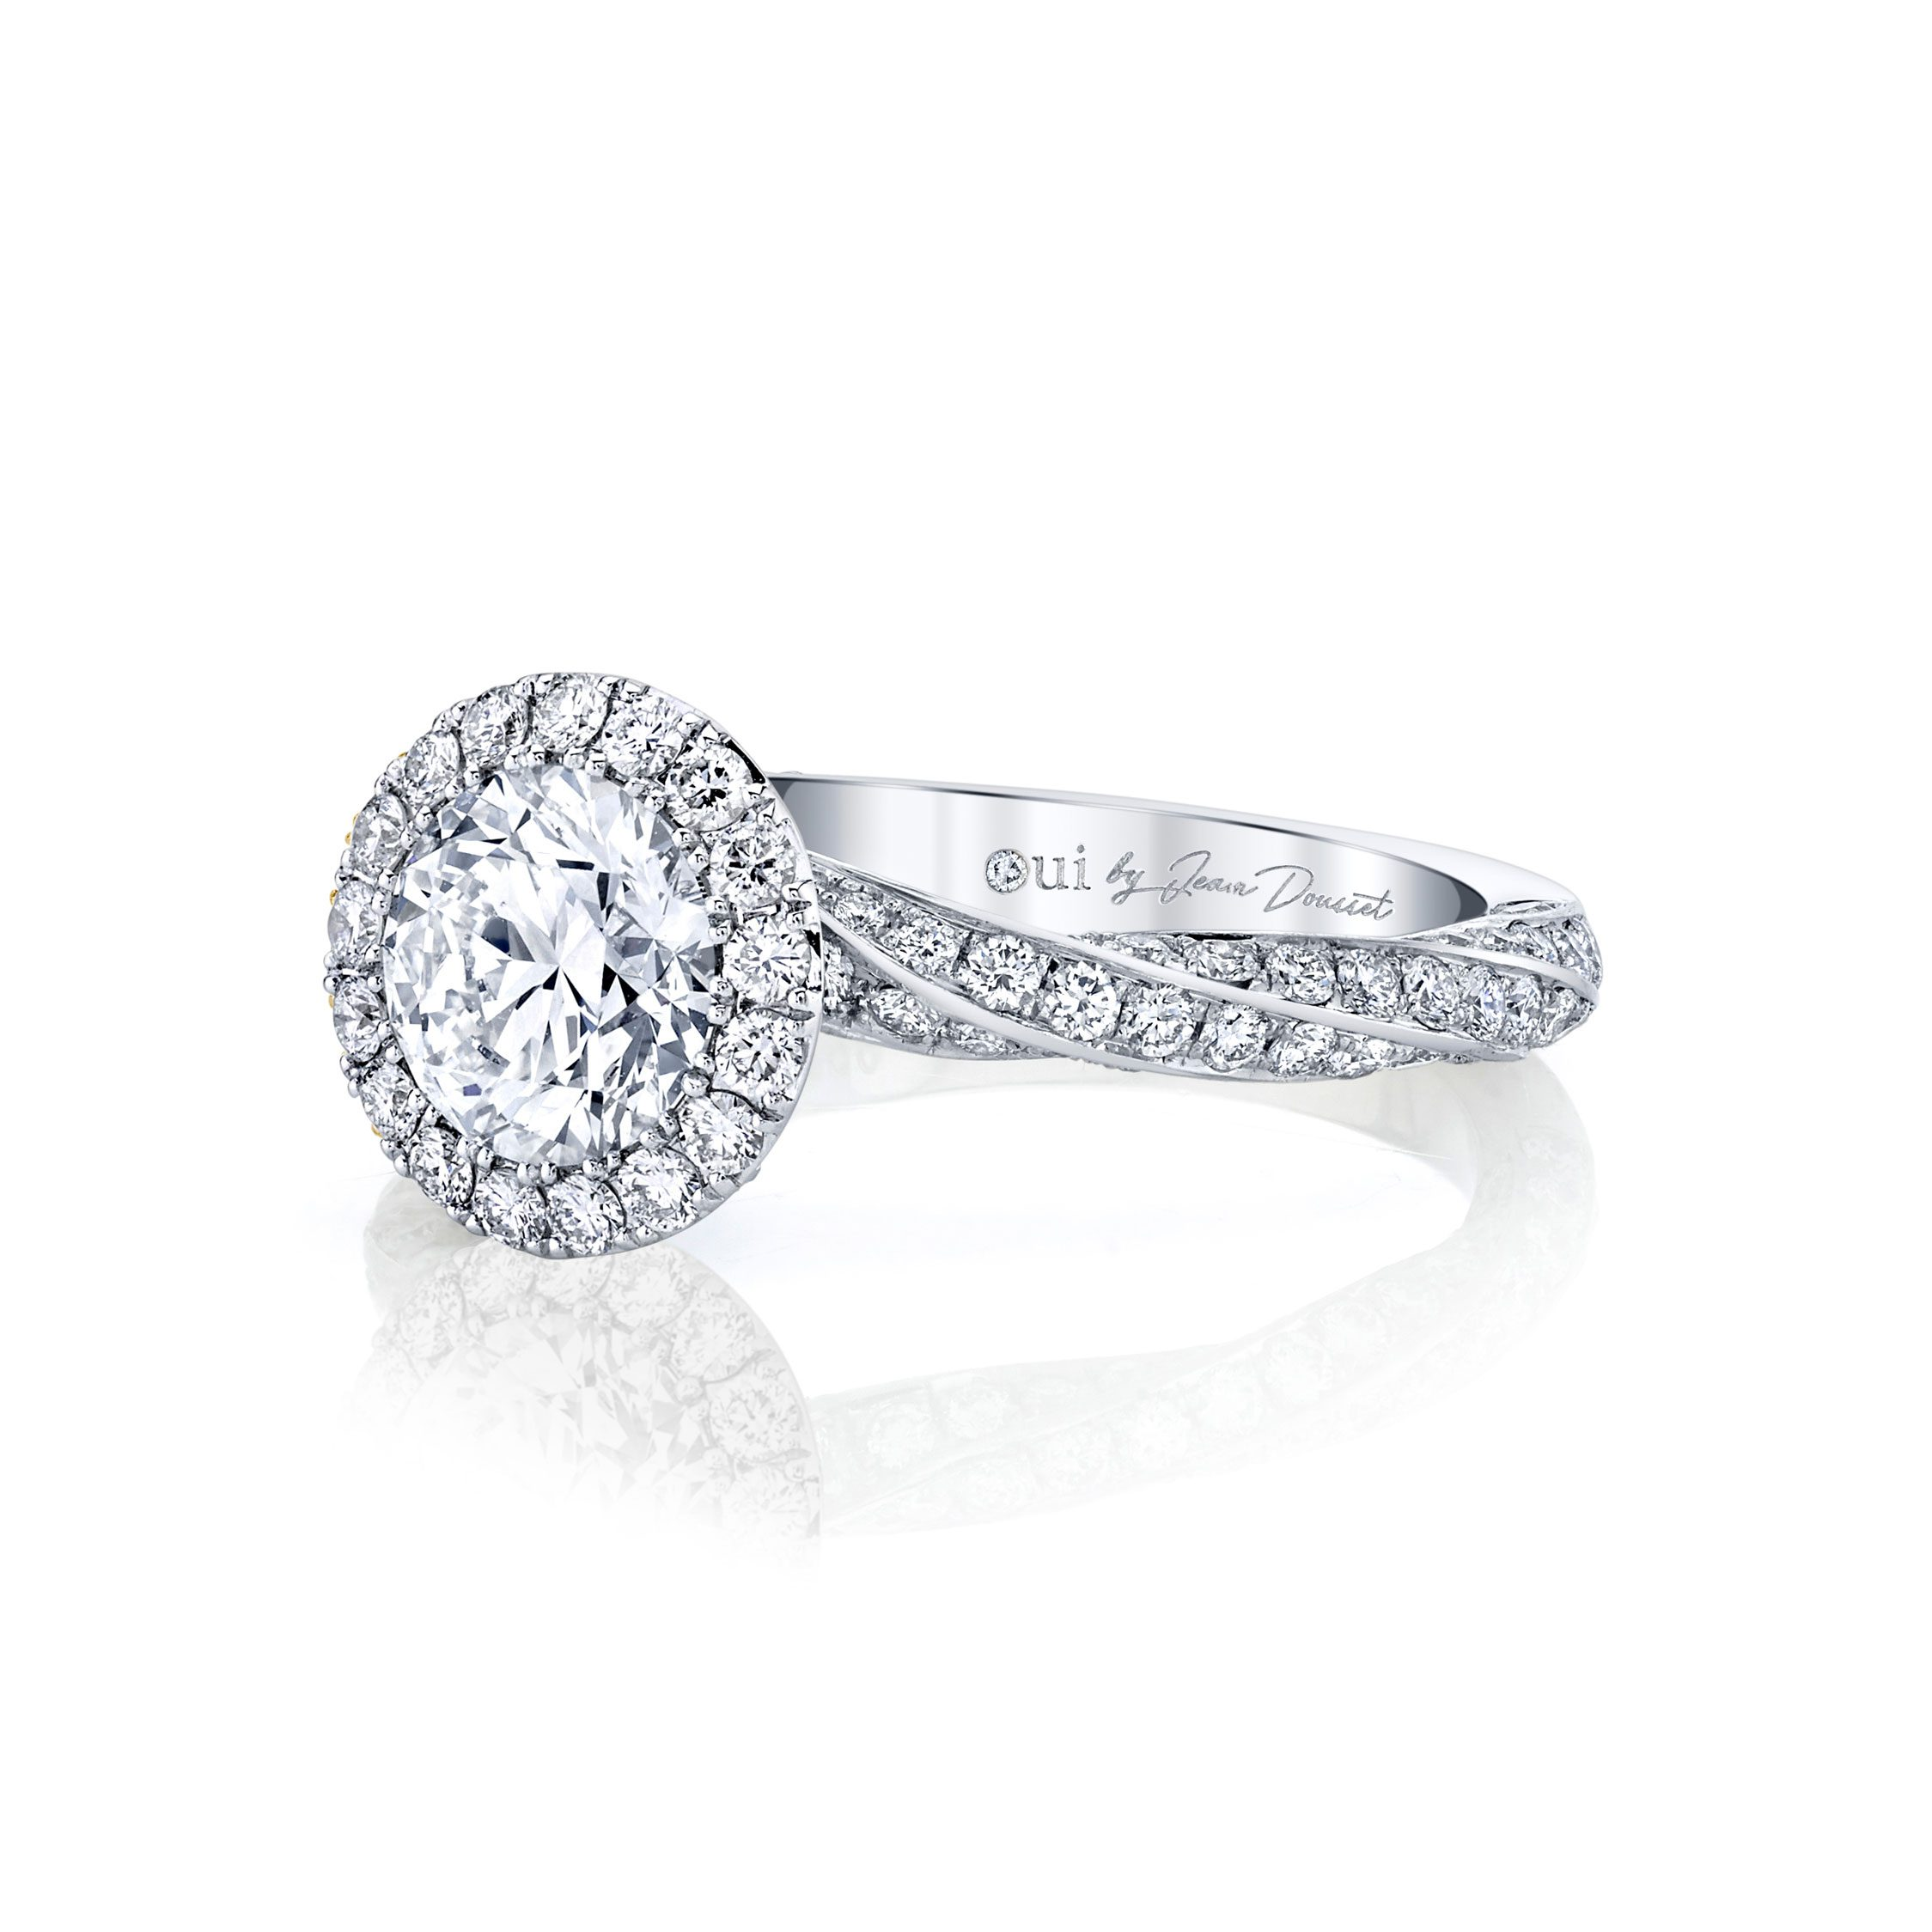 Camille Seamless Halo® Round Brilliant Engagement Ring 18k White Gold Side Shot